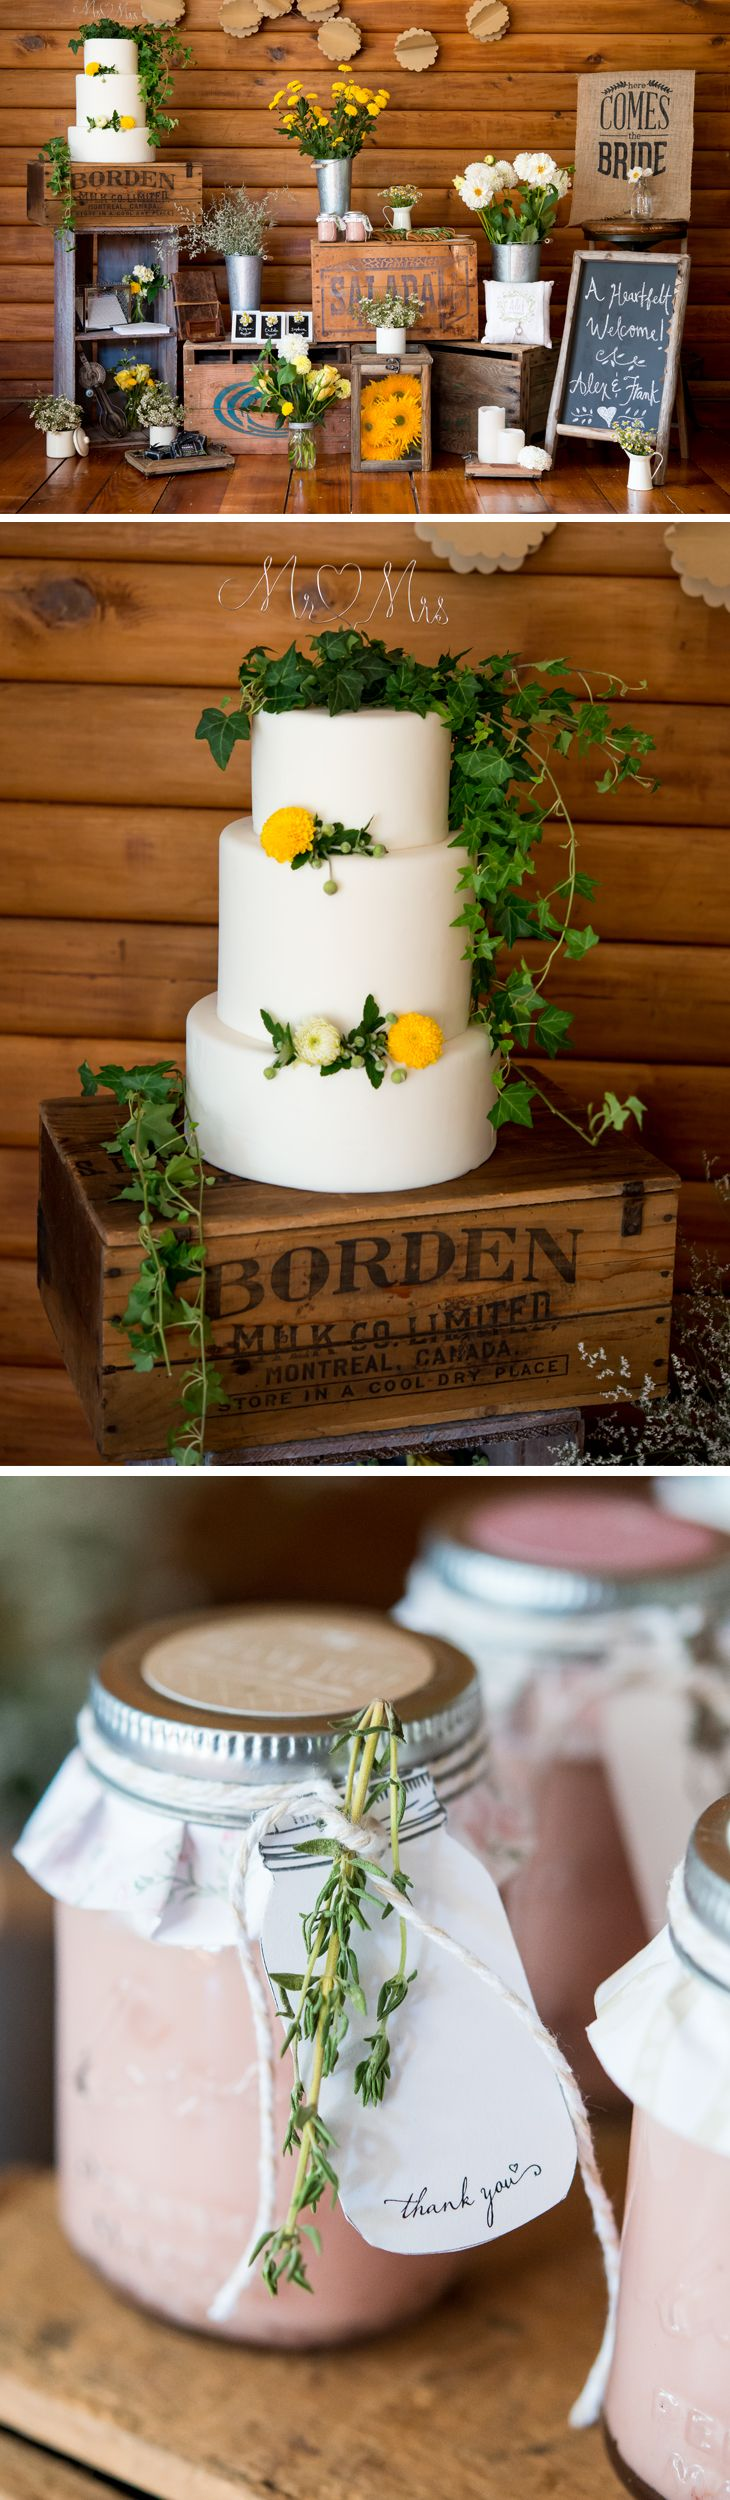 This Rustic Charm wedding theme is warm and inviting and can be incorporated throughout the wedding decor, wedding cake, and guest favors. This look will never go out of style. Color palette consists of a bold blend of freshly picked greens and natural browns with pops of white and yellow.